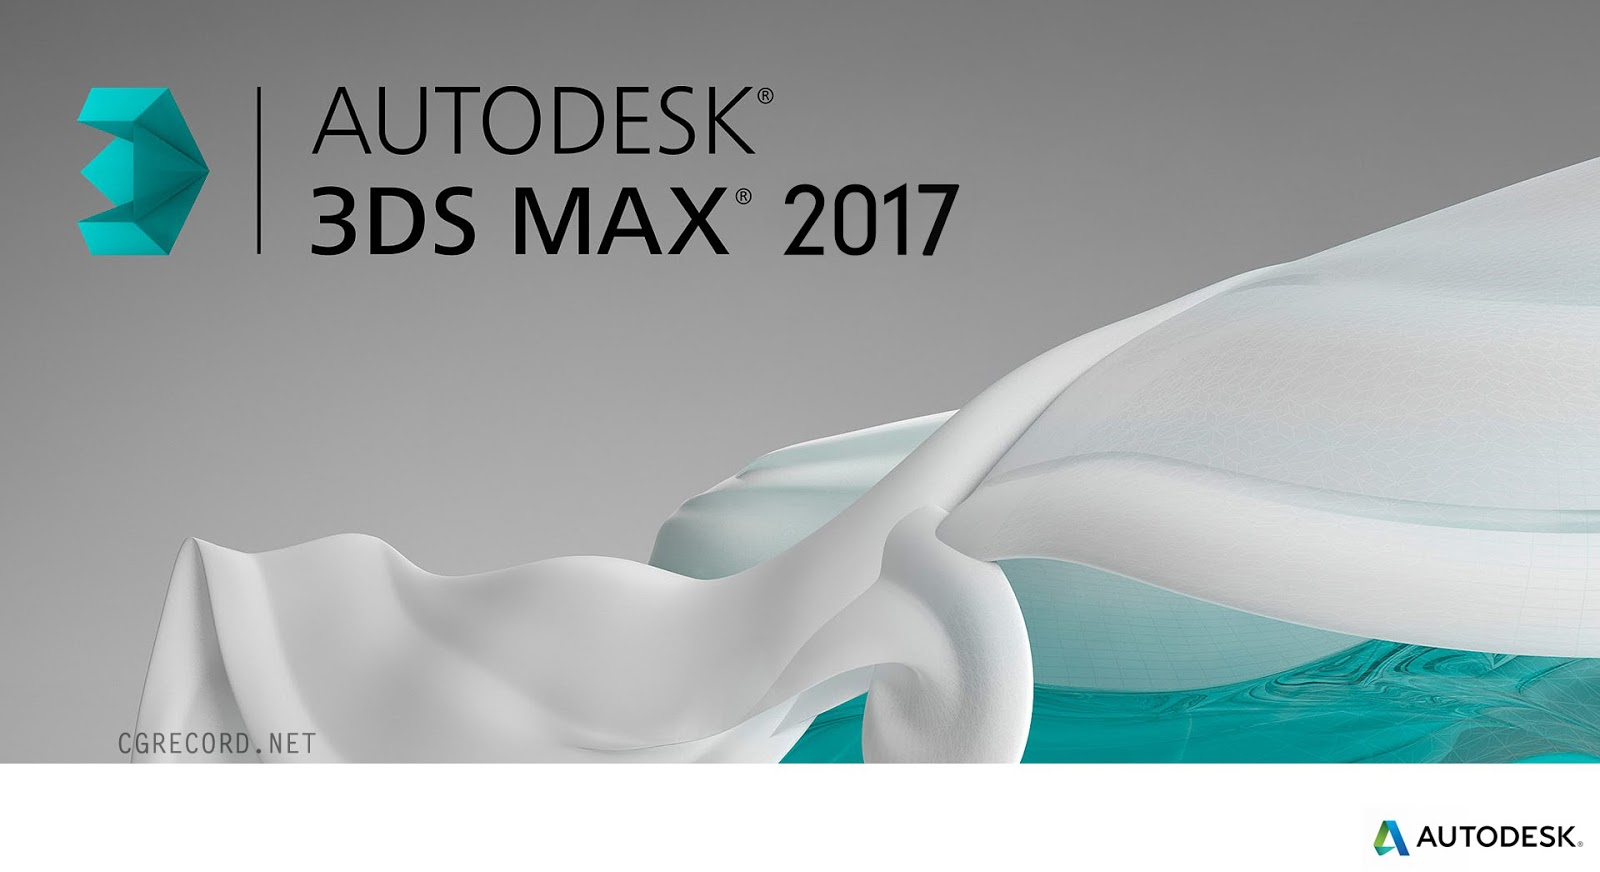 autodesk 3ds max 2017 cg daily news